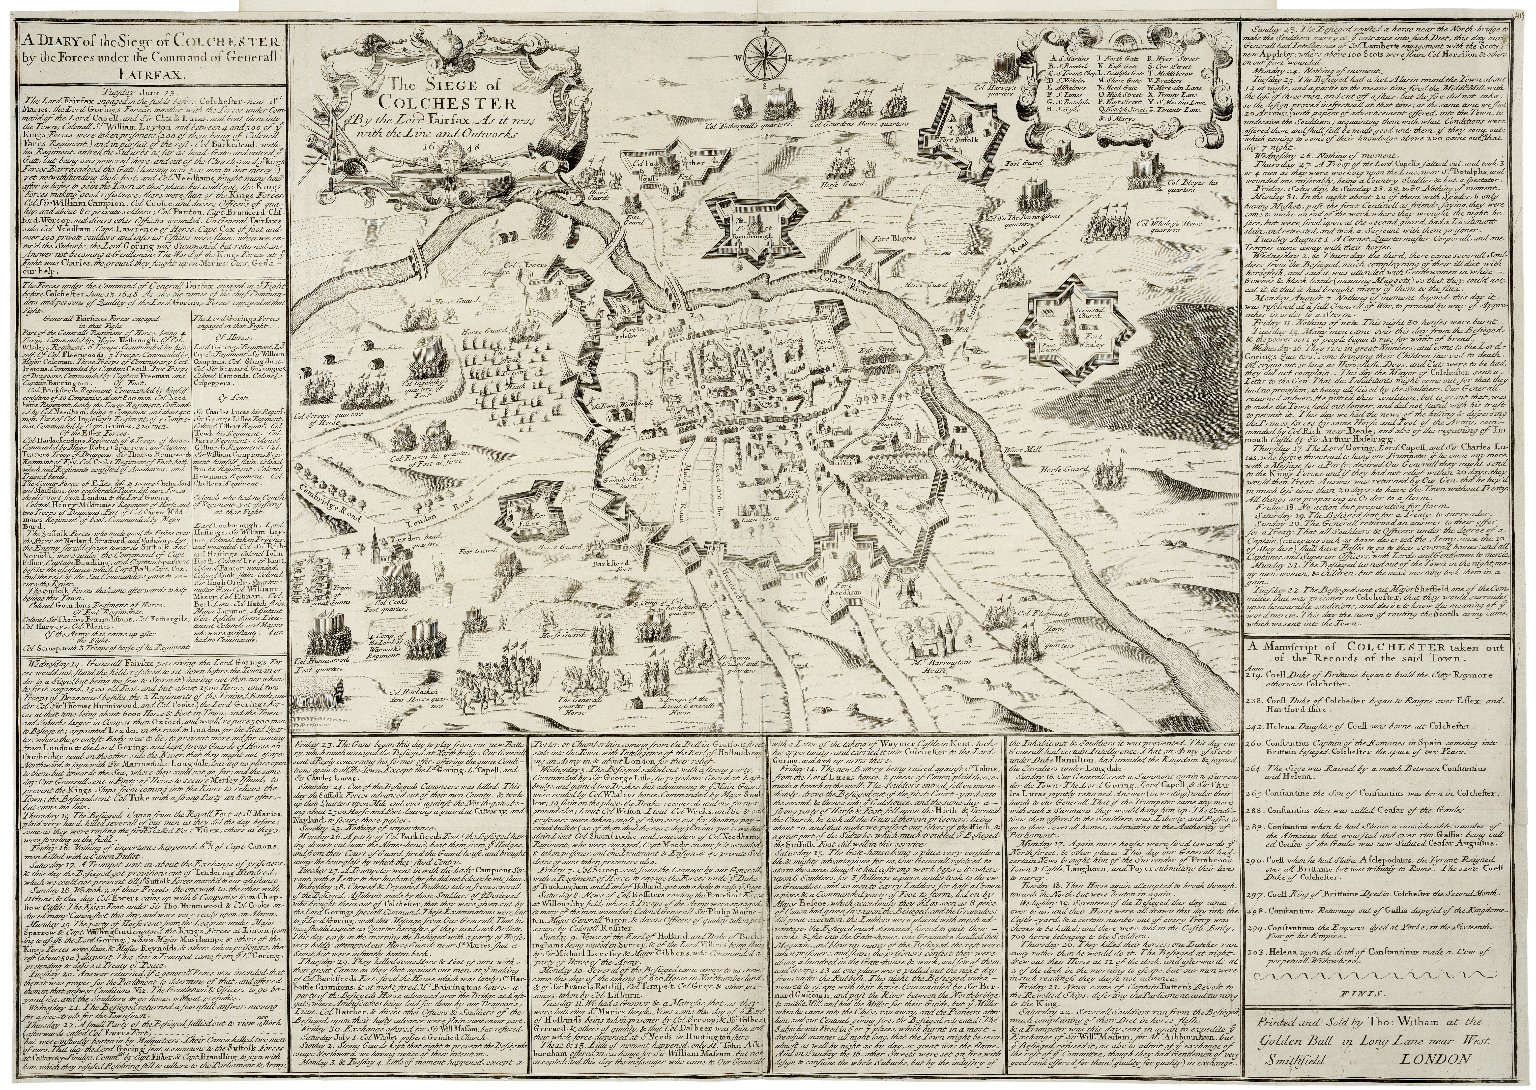 A diary of the siege of Colchester by the forces under the command of Generall Fairfax.